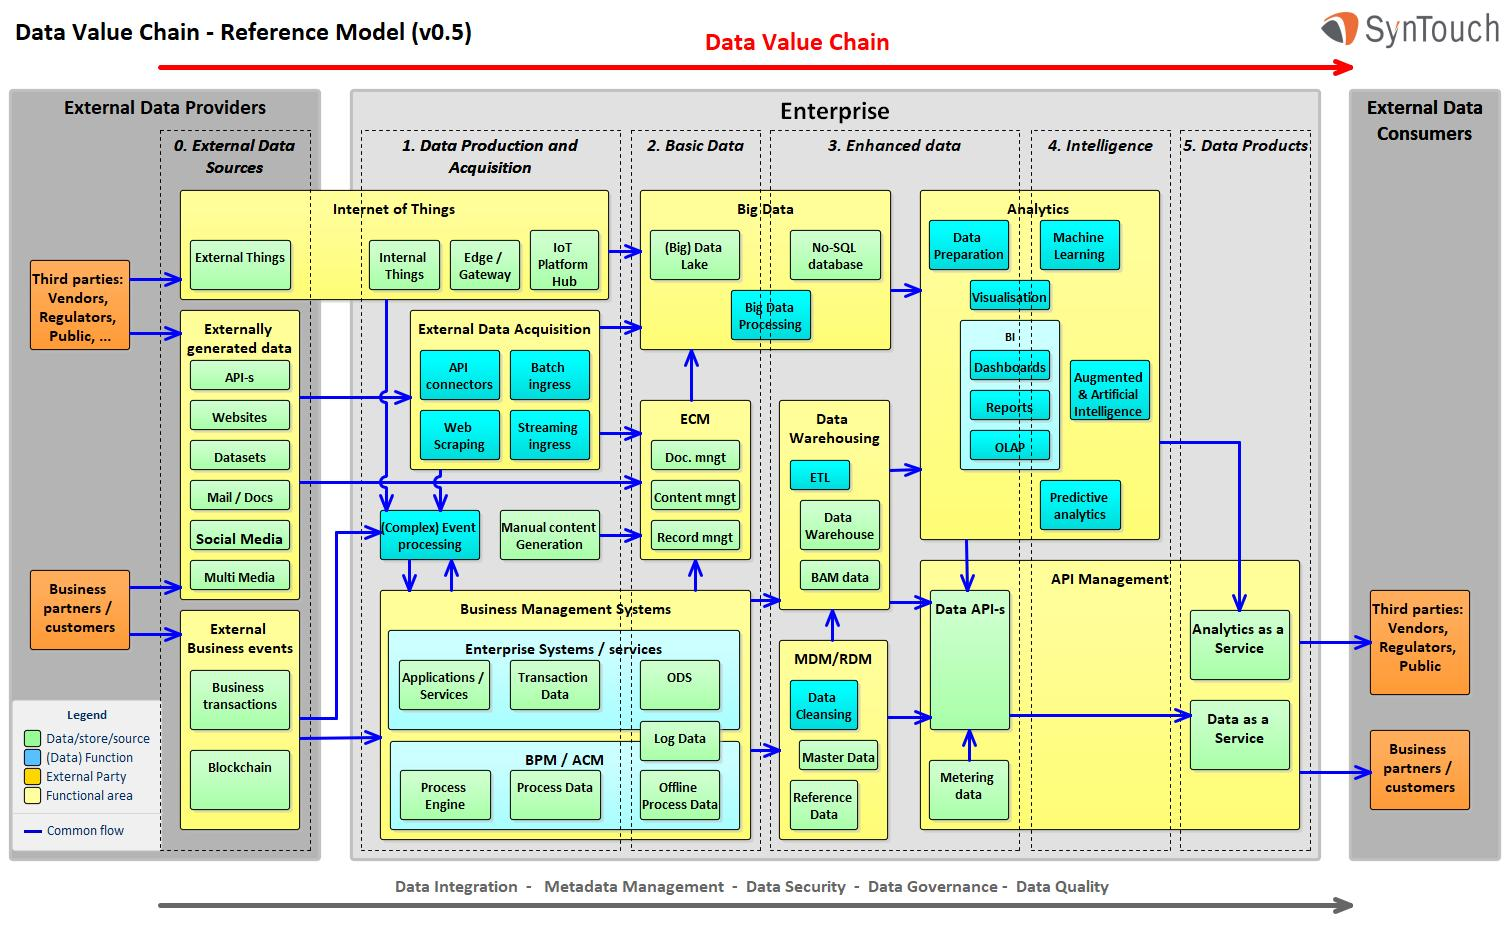 SynTouch Data Value Chain – Reference Model - Syntouch